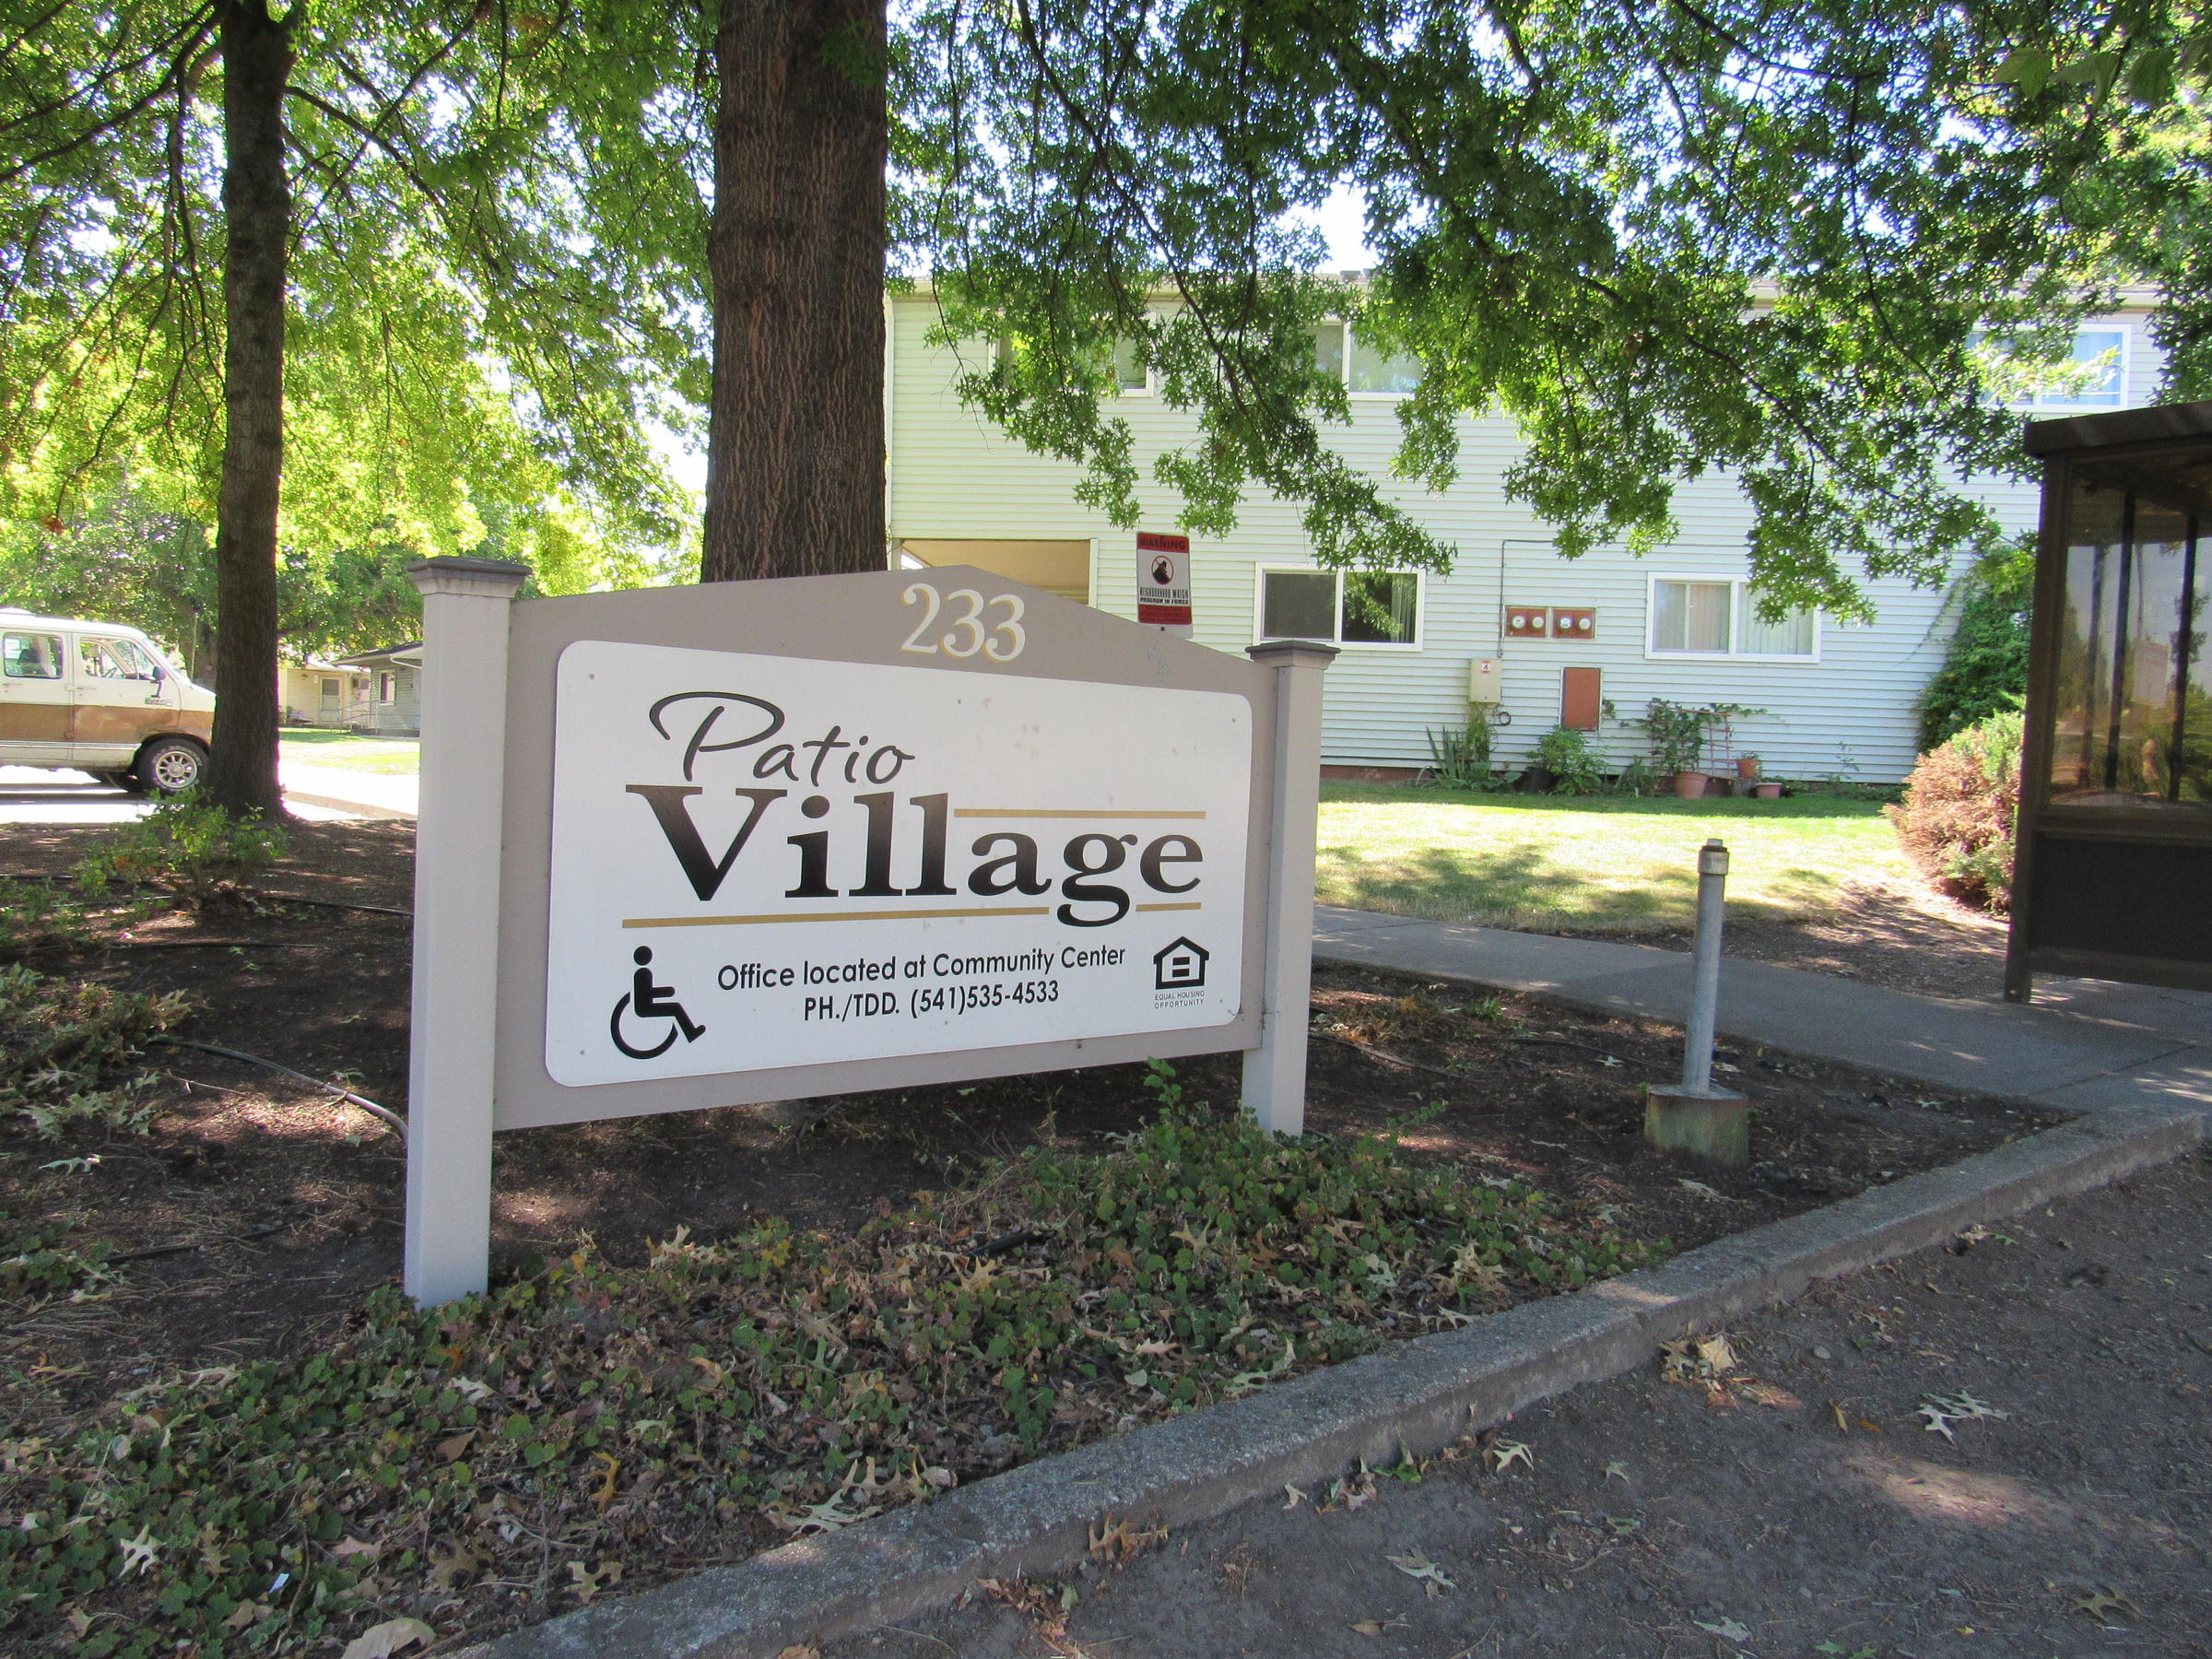 Patio Village Is A 64 Unit Subsidized Apartment Complex Run By The Housing  Authority Of Jackson County And Located In Downtown Talent, Oregon.